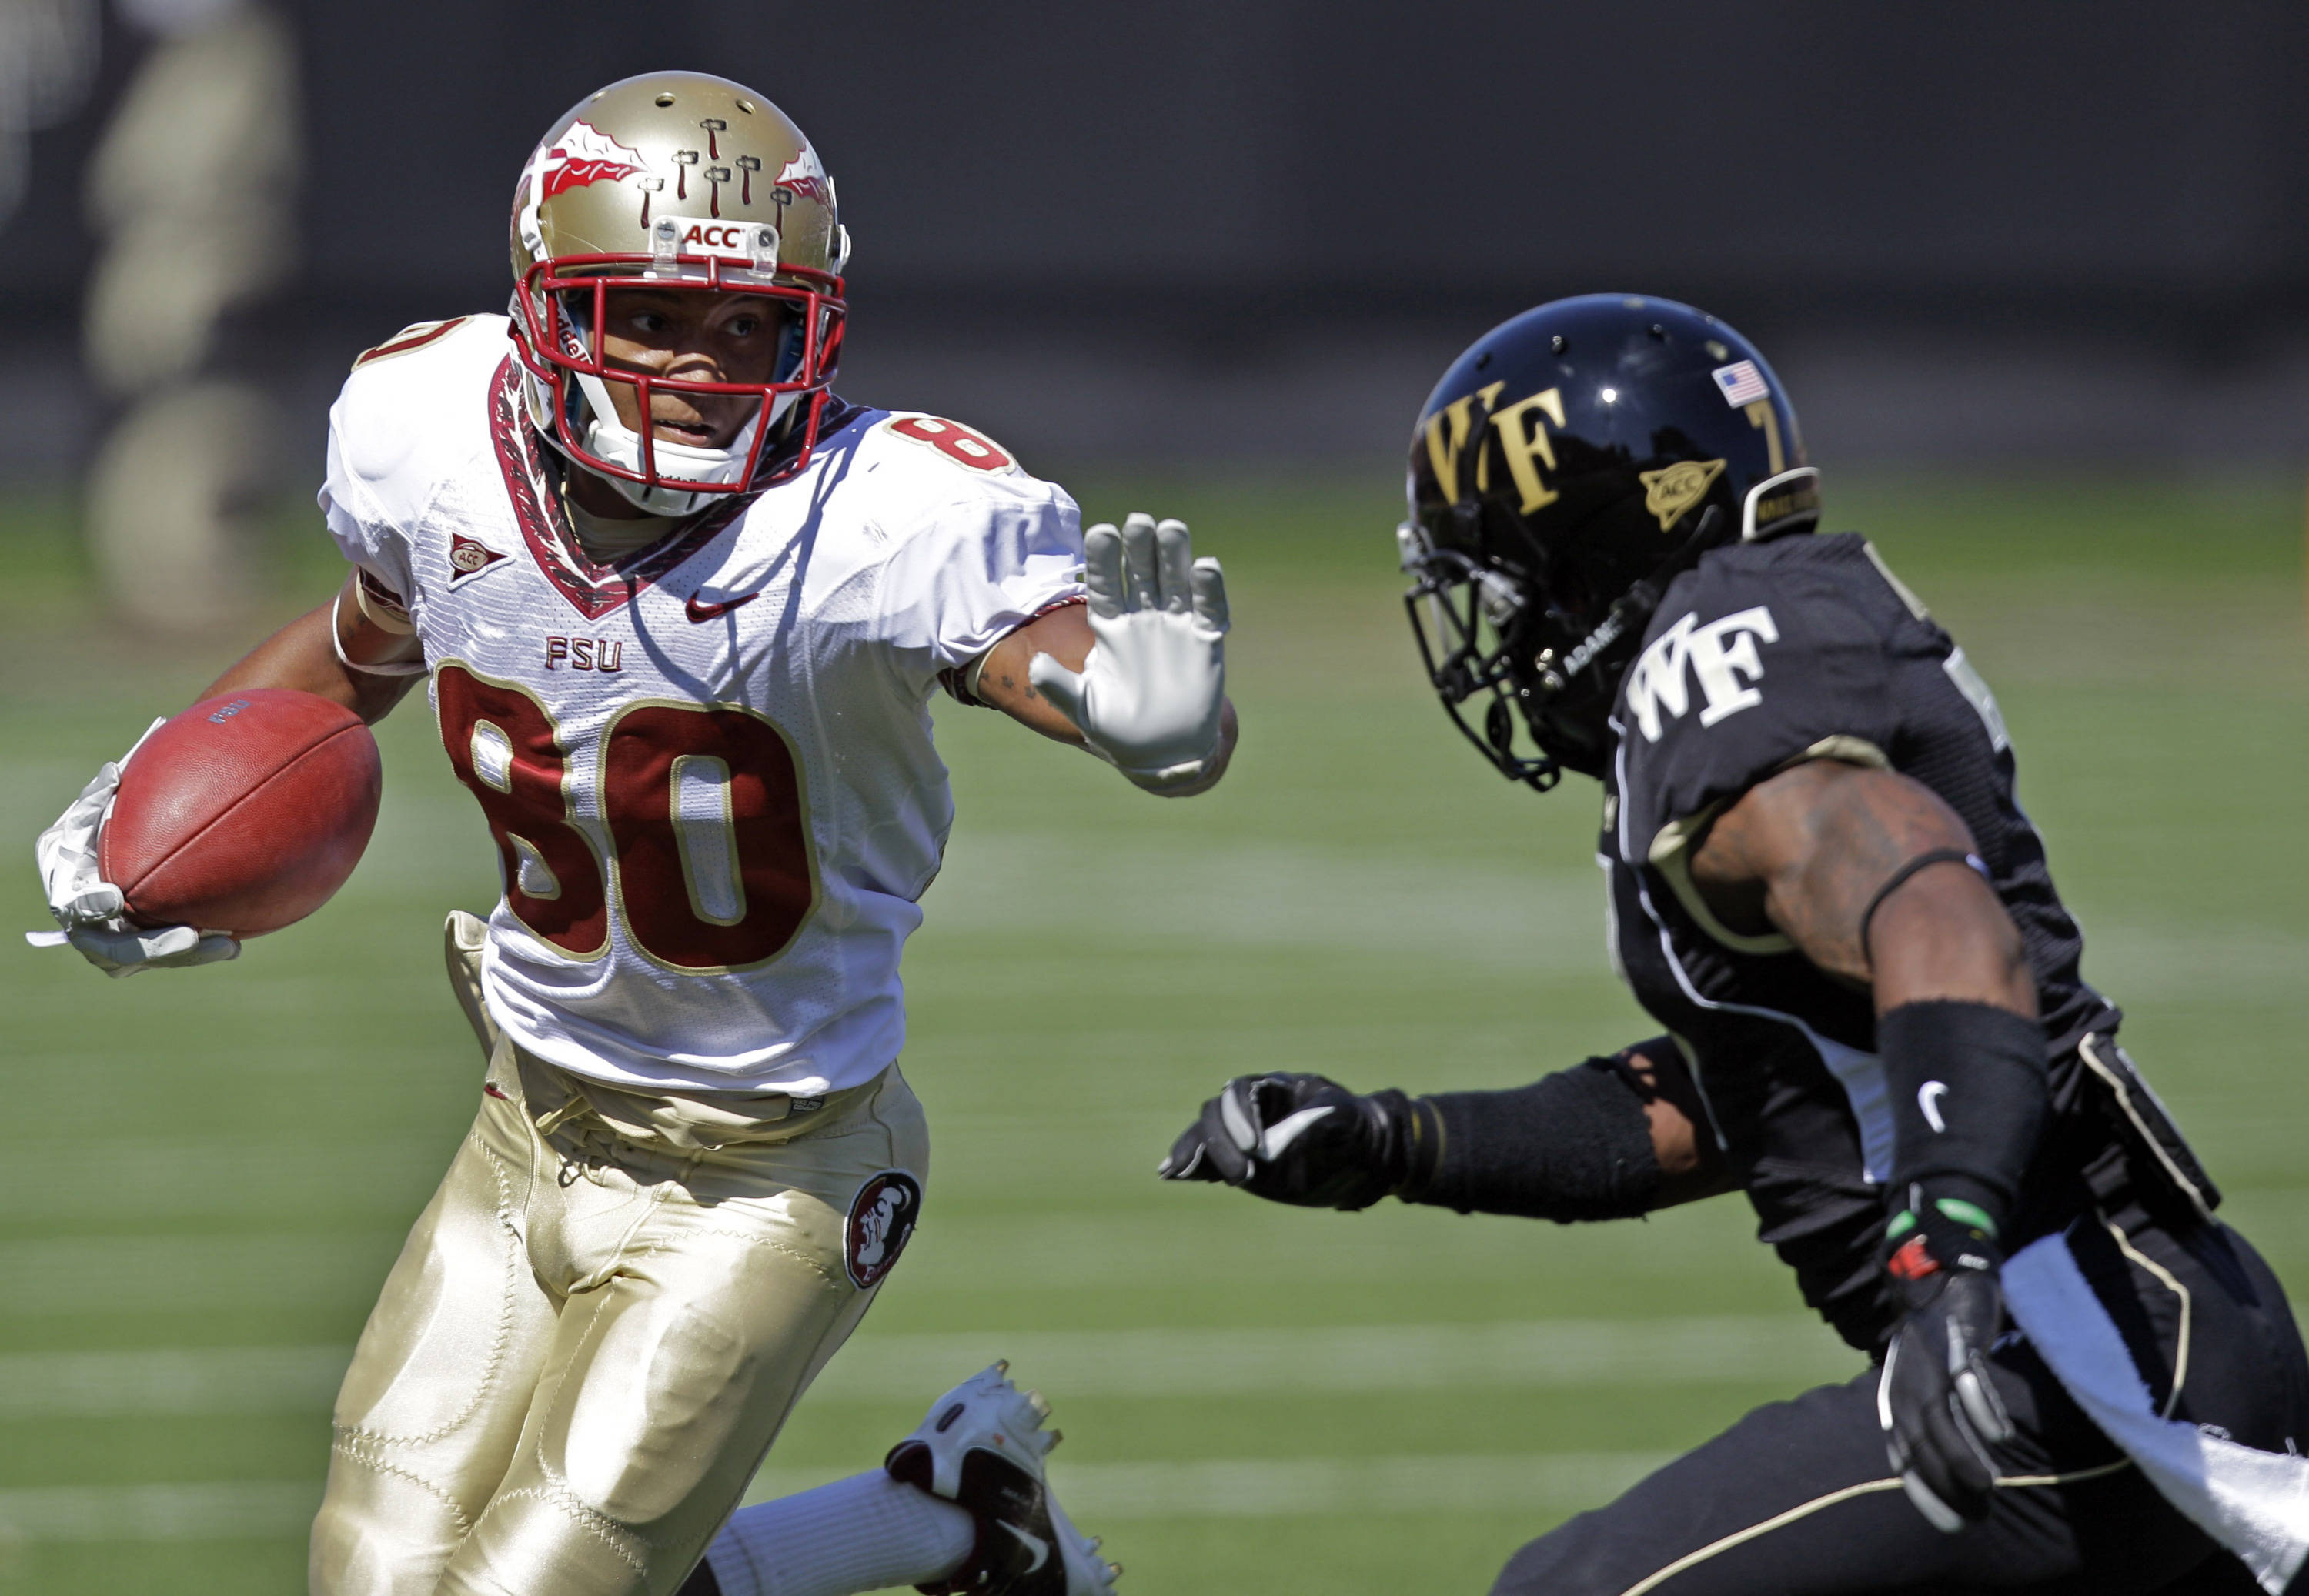 Florida State's Rashad Greene, left, tries to run past Wake Forest's Merrill Noel, right, in the first half of a NCAA college football game in Winston-Salem, N.C., Saturday, Oct. 8, 2011. (AP Photo/Chuck Burton)